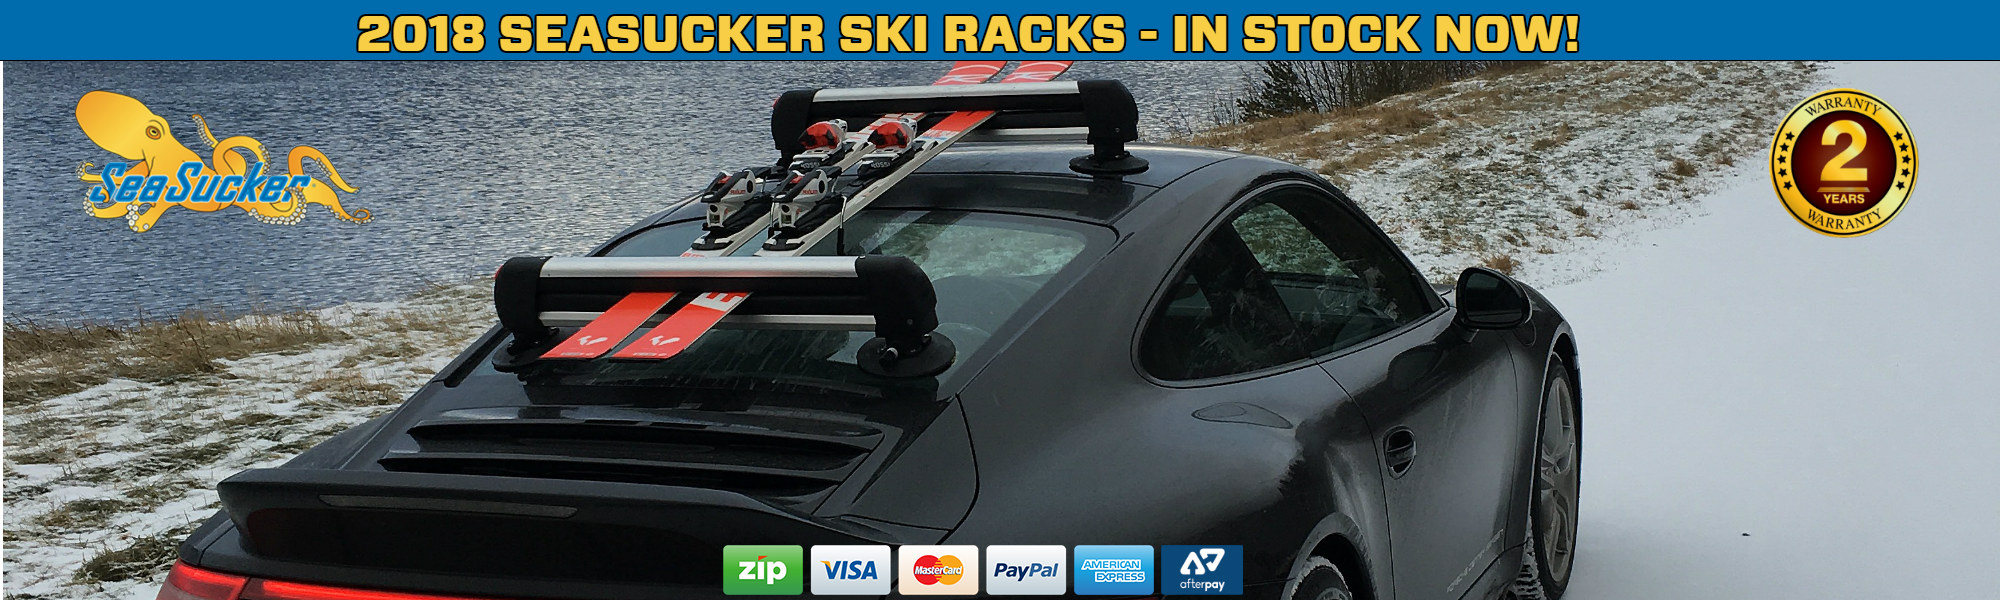 SeaSucker Ski Racks Home Page Banner